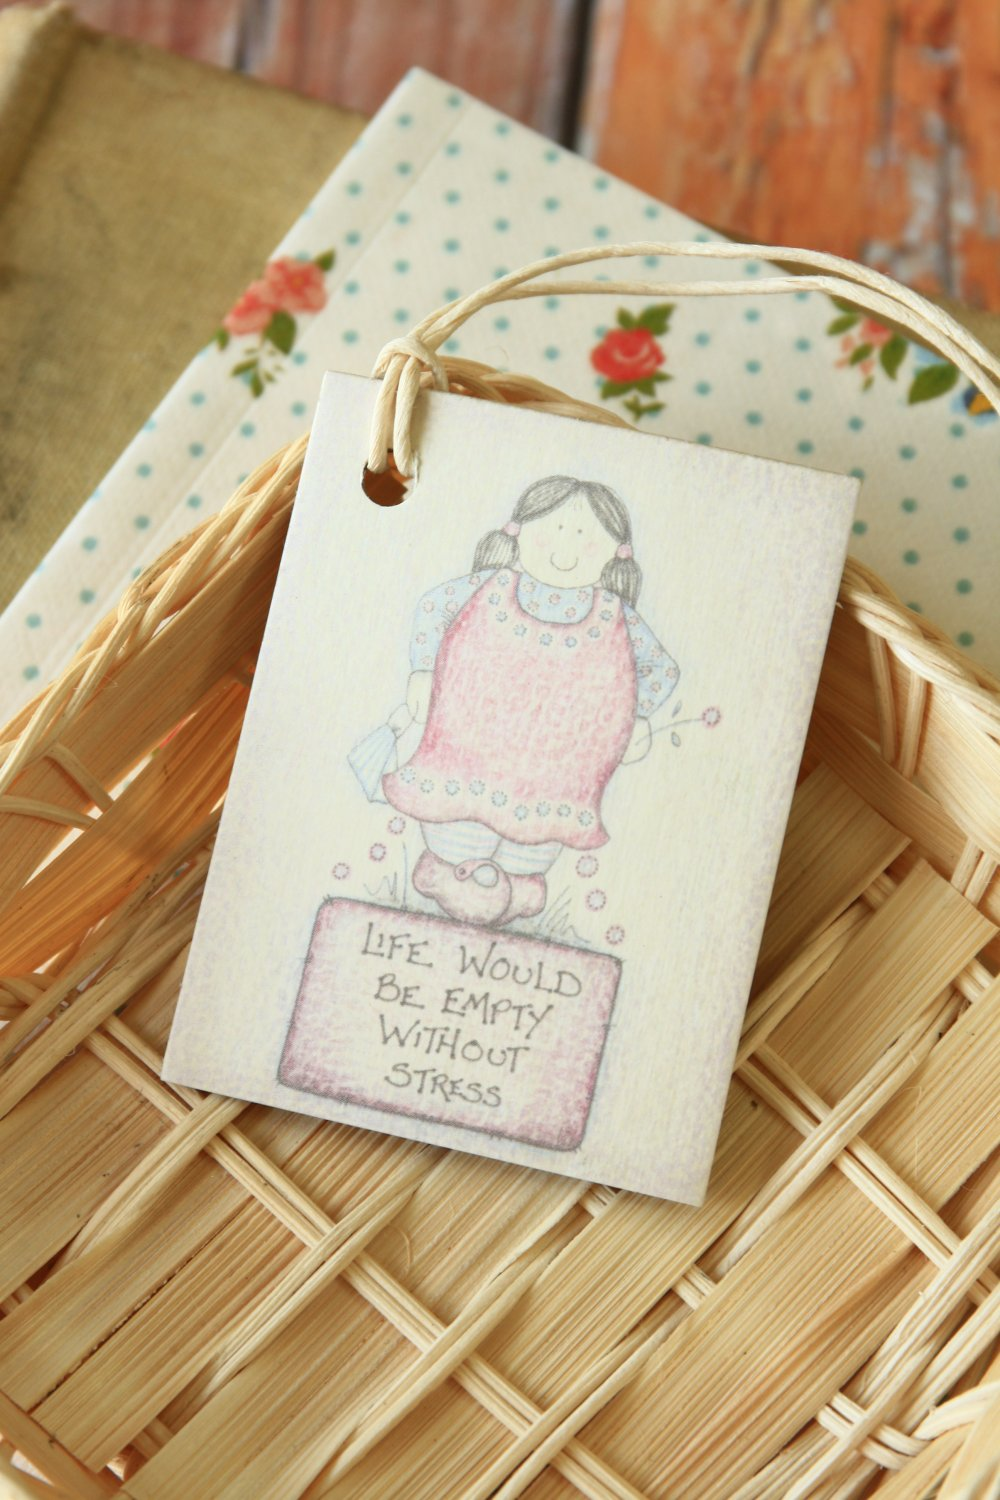 Stress East of India printed gift tags